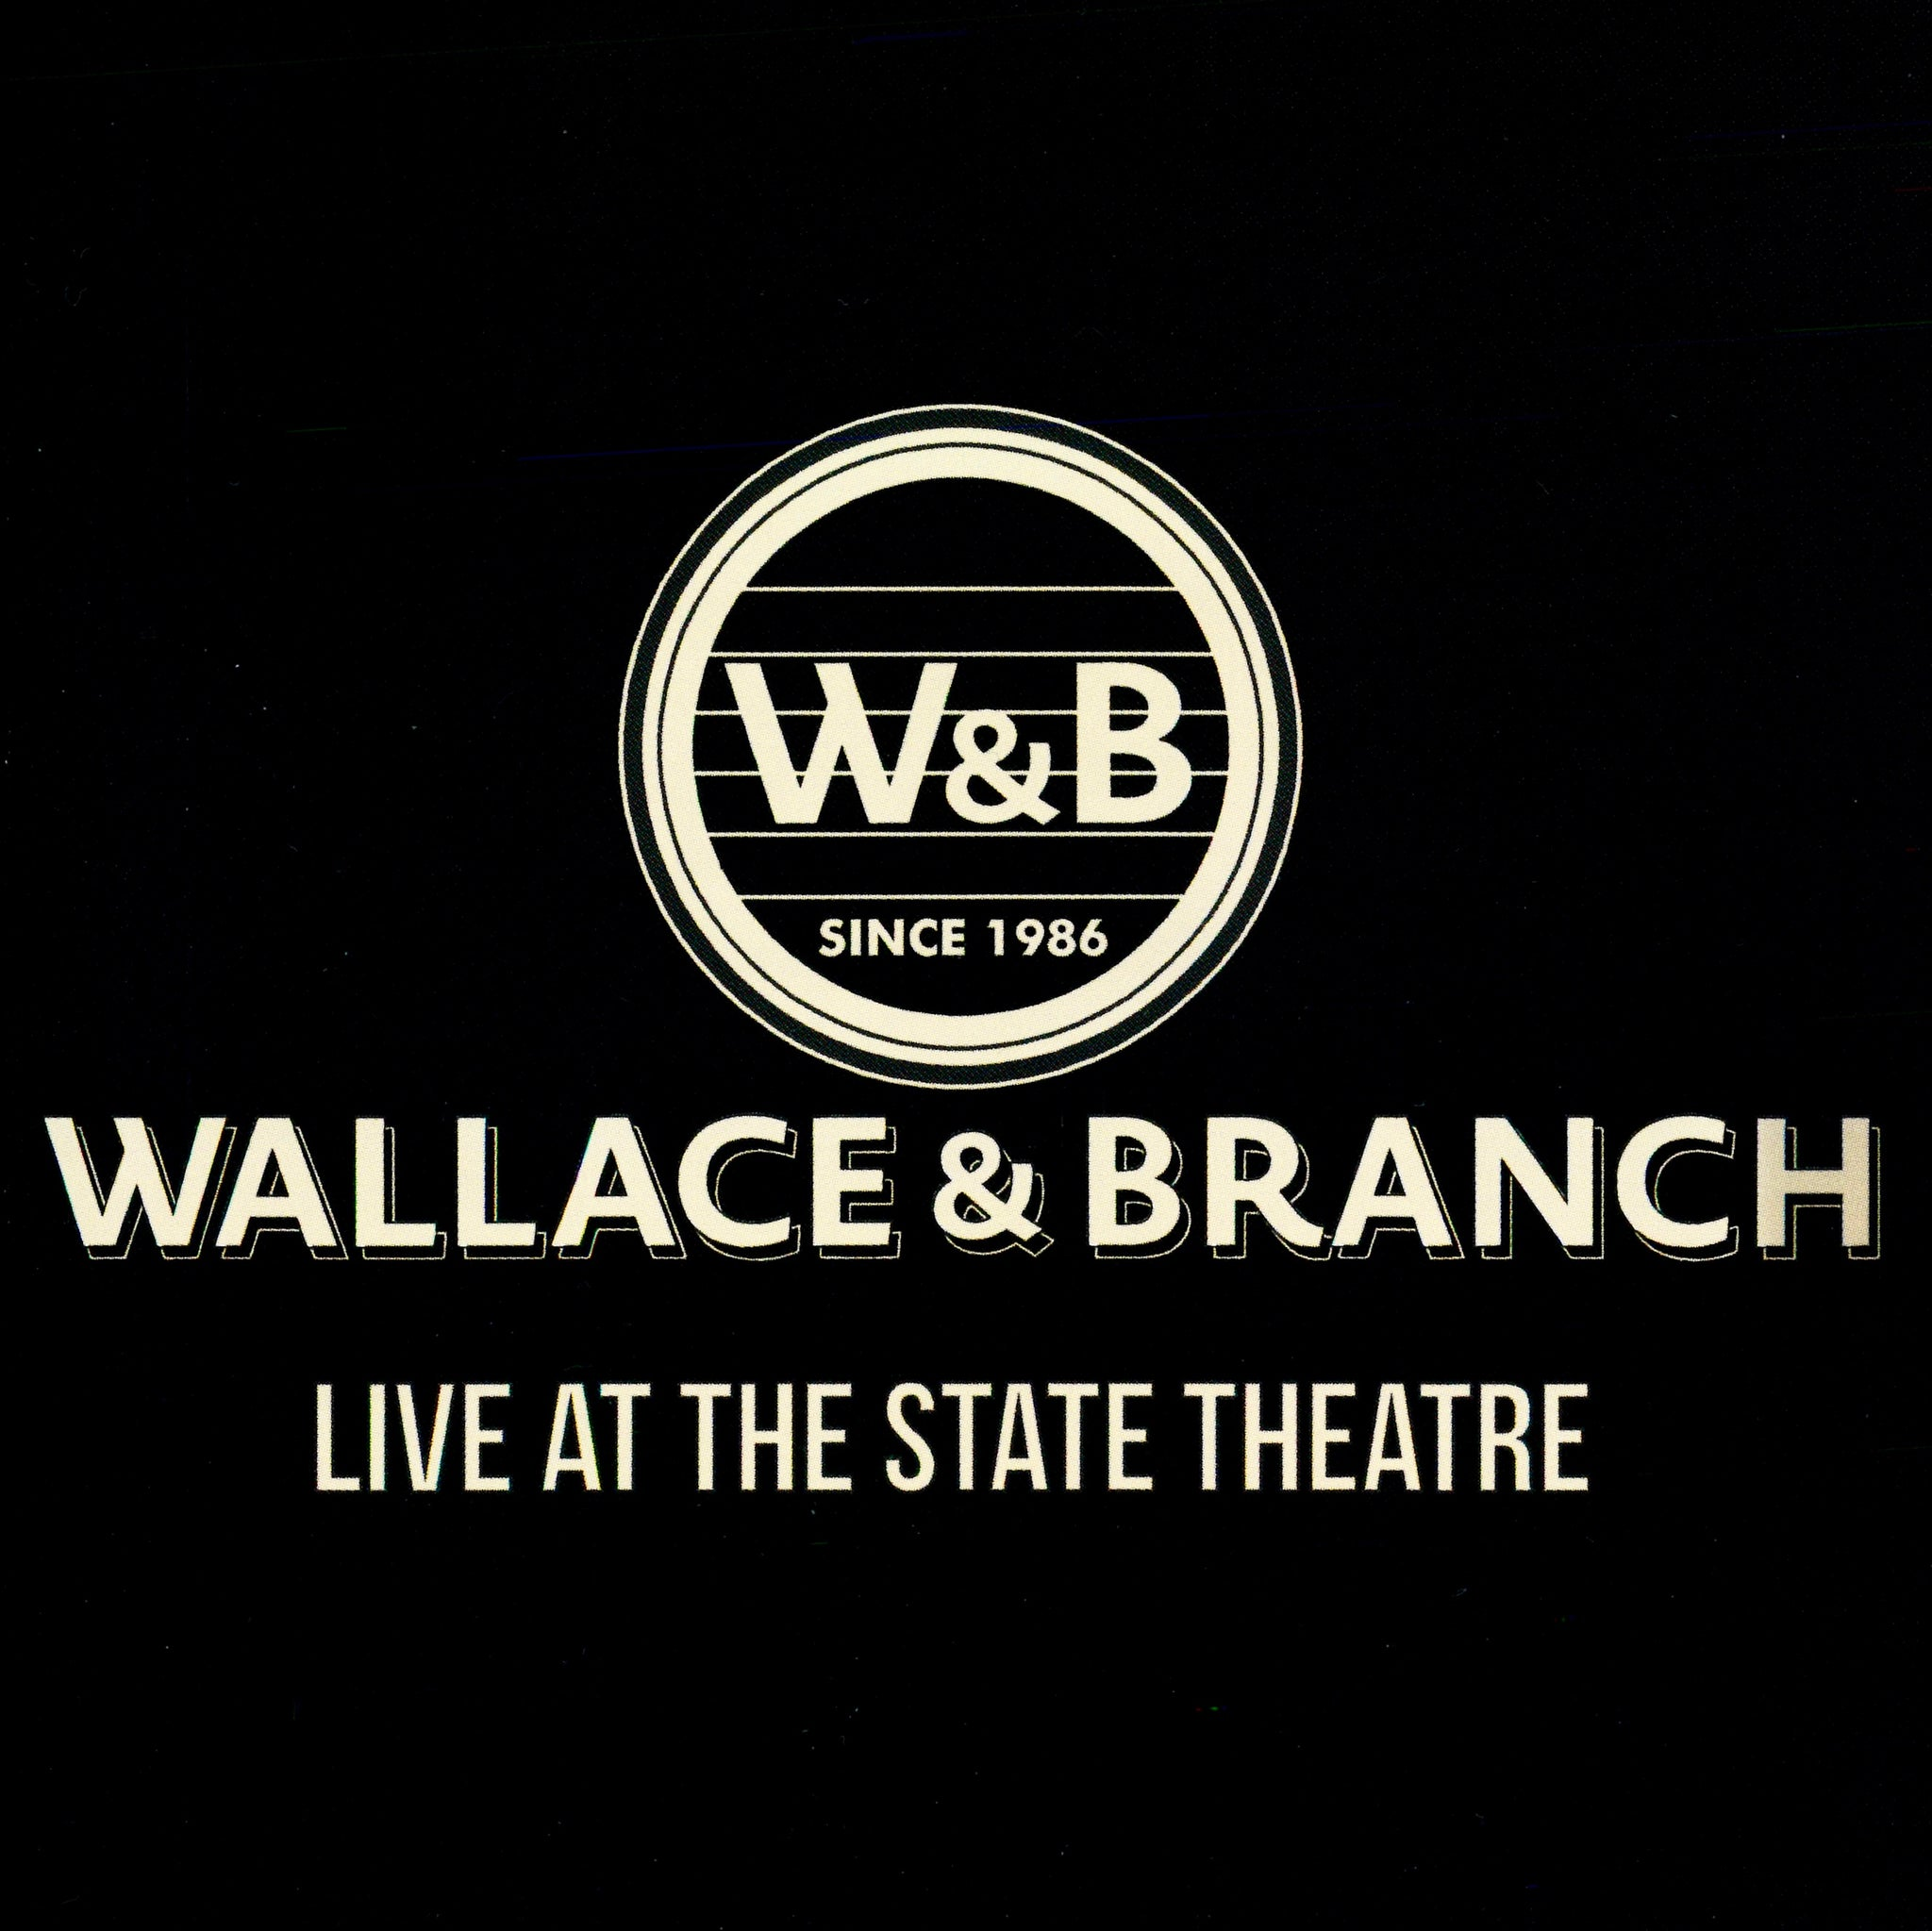 Wallace & Branch - Live at the State Theatre (DVD)